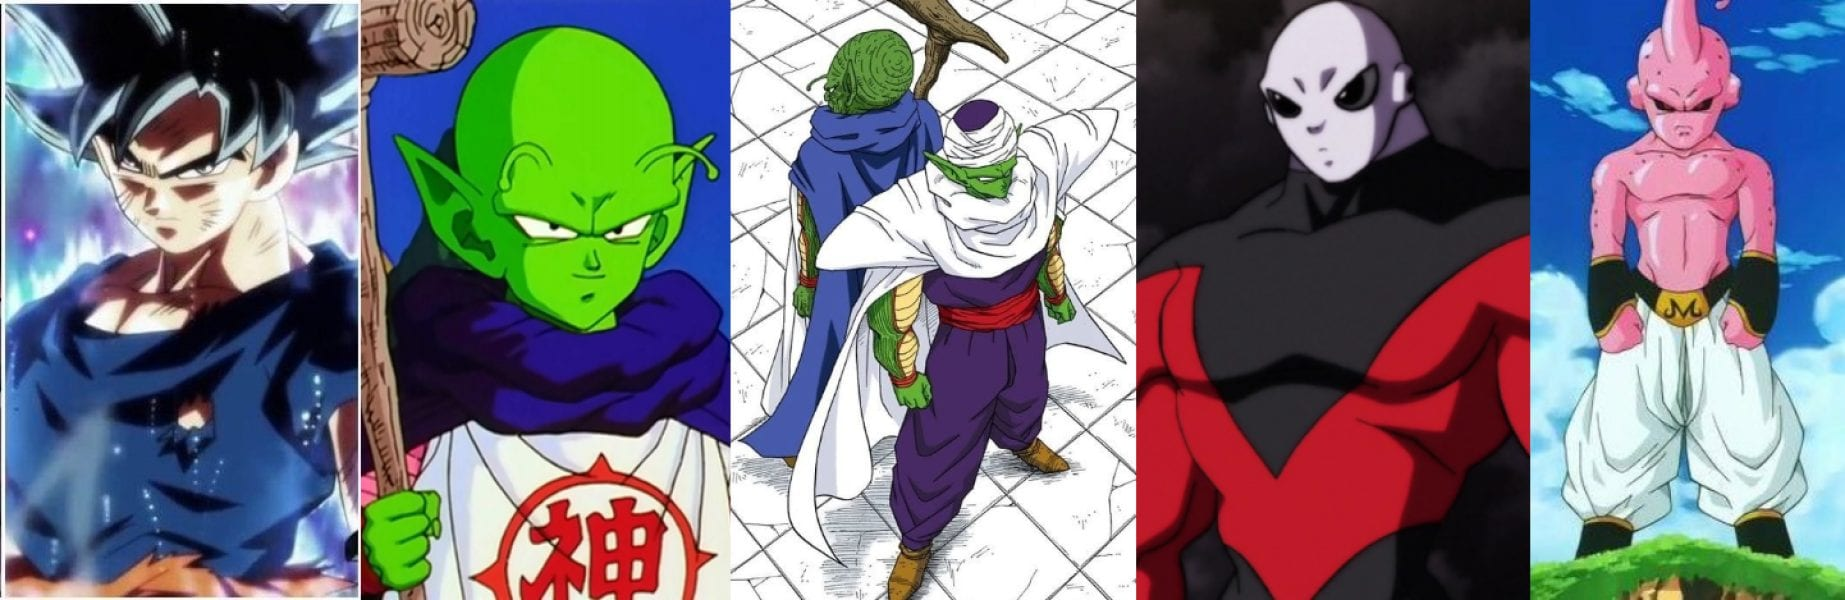 Frequently Asked Questions on God Ki In Dragon Ball Super